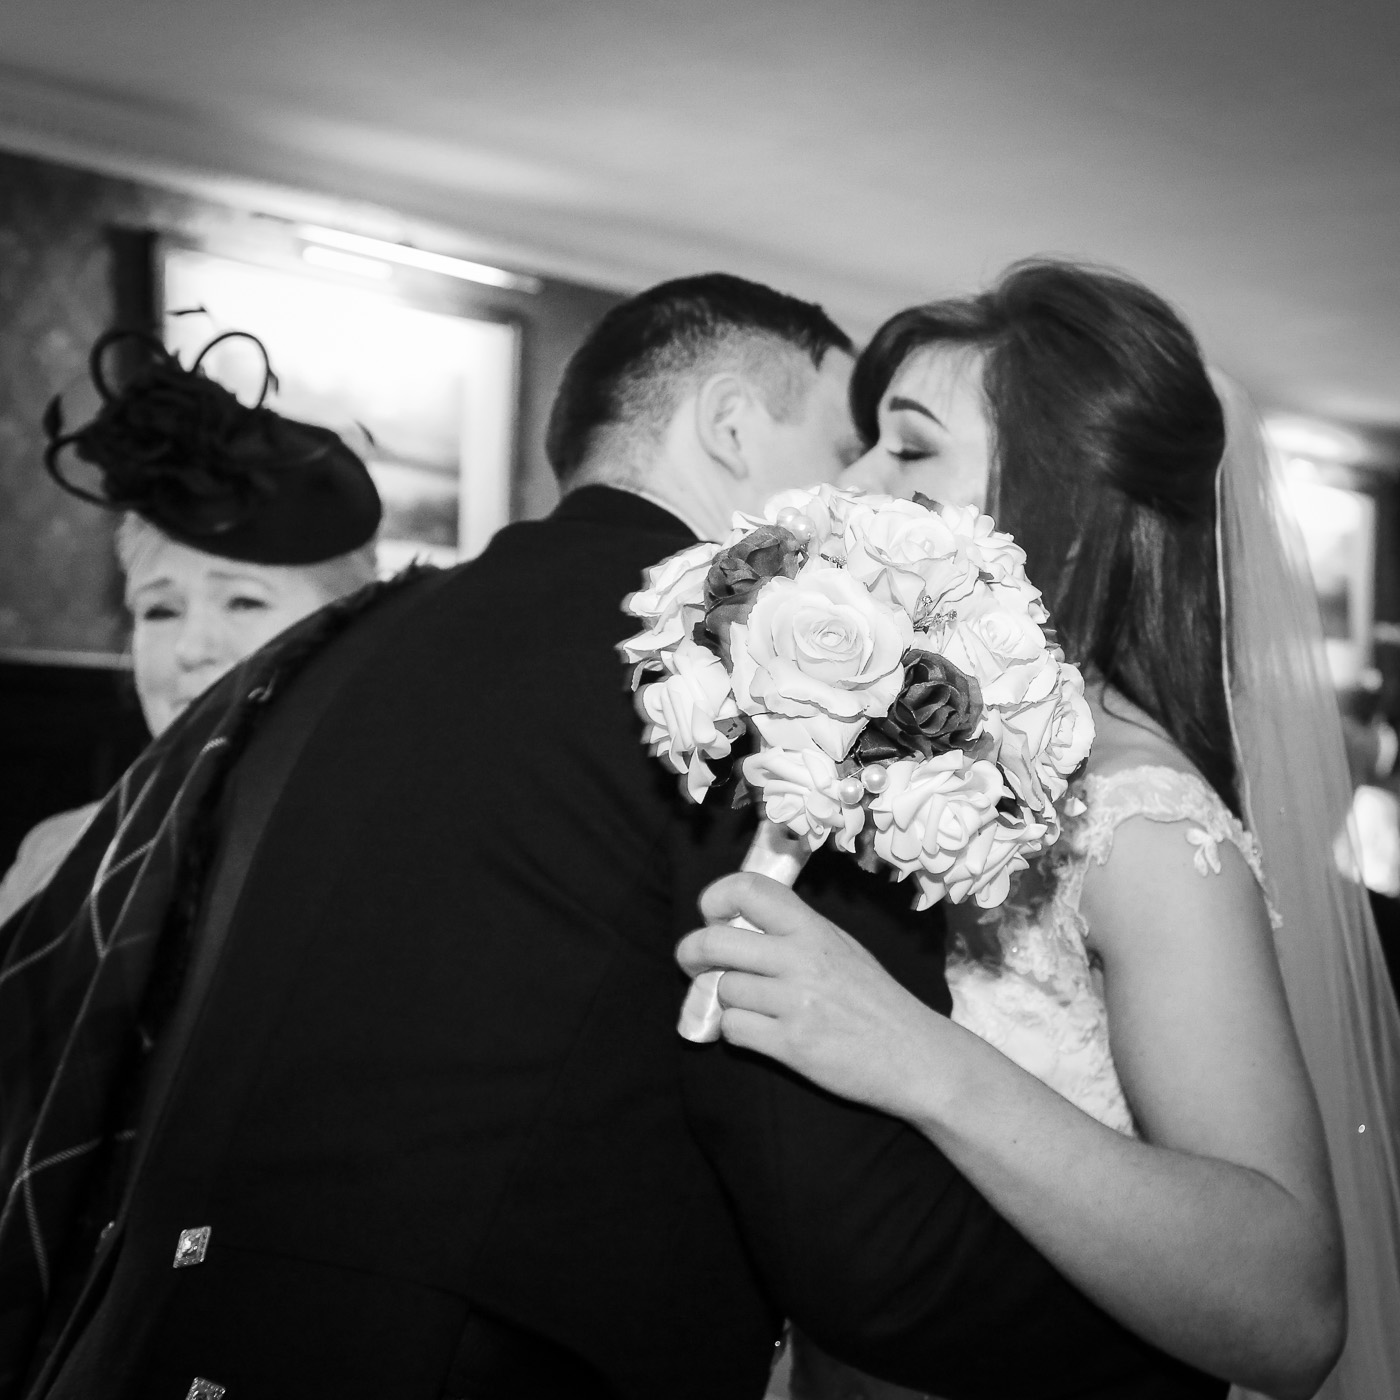 wedding-photography-at-bunchrew-house-inverness-8909-2